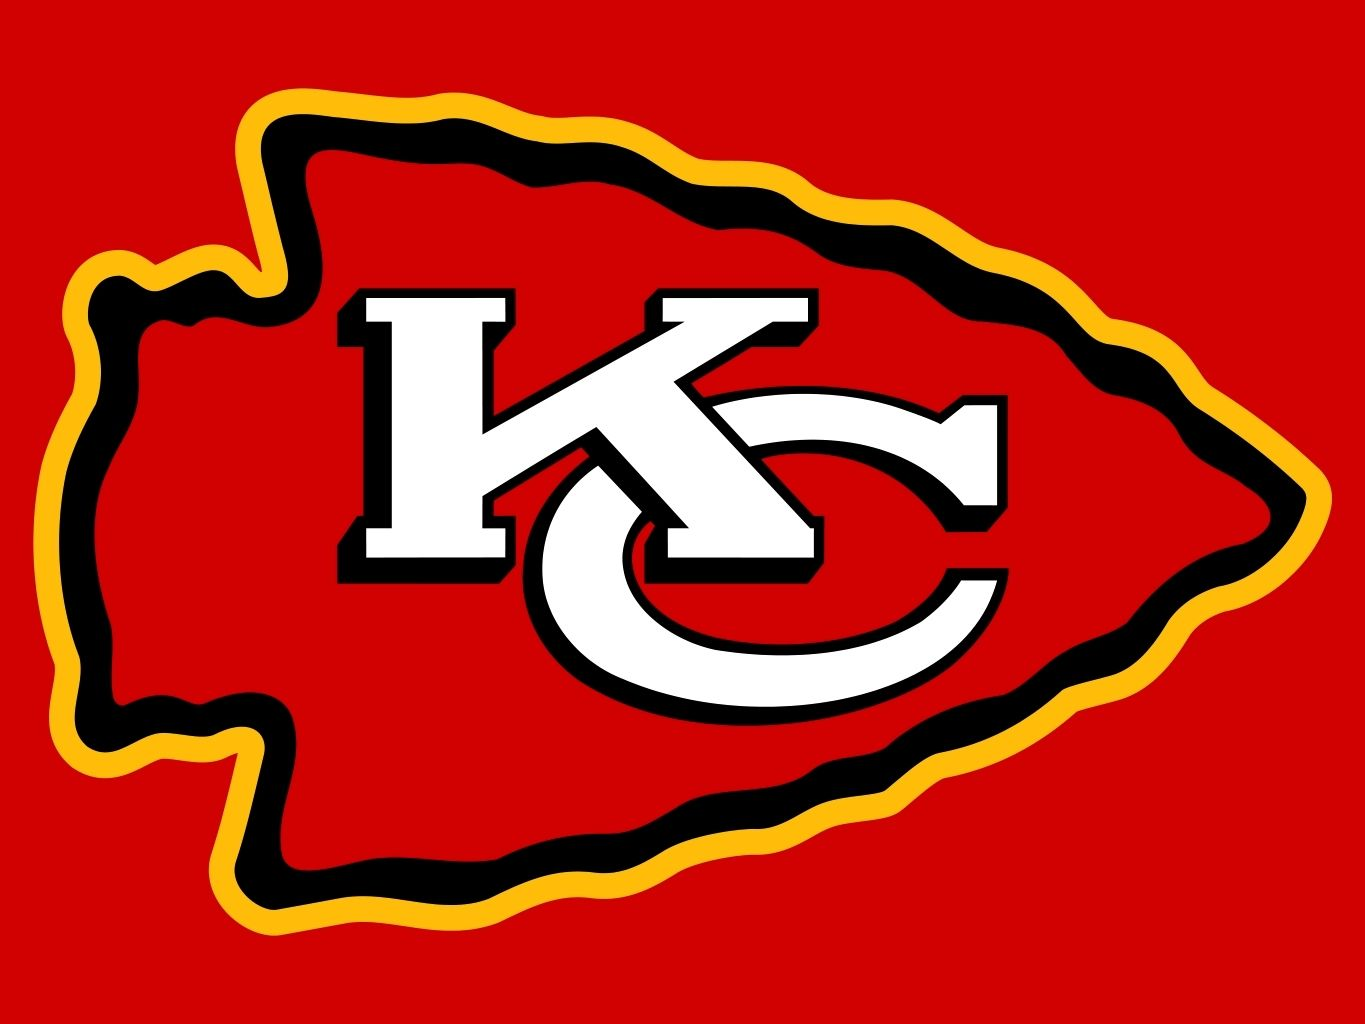 Kansas City Chiefs Logo - Pin by Diana Lehmann on painting | Kansas City Chiefs, Kansas city ...